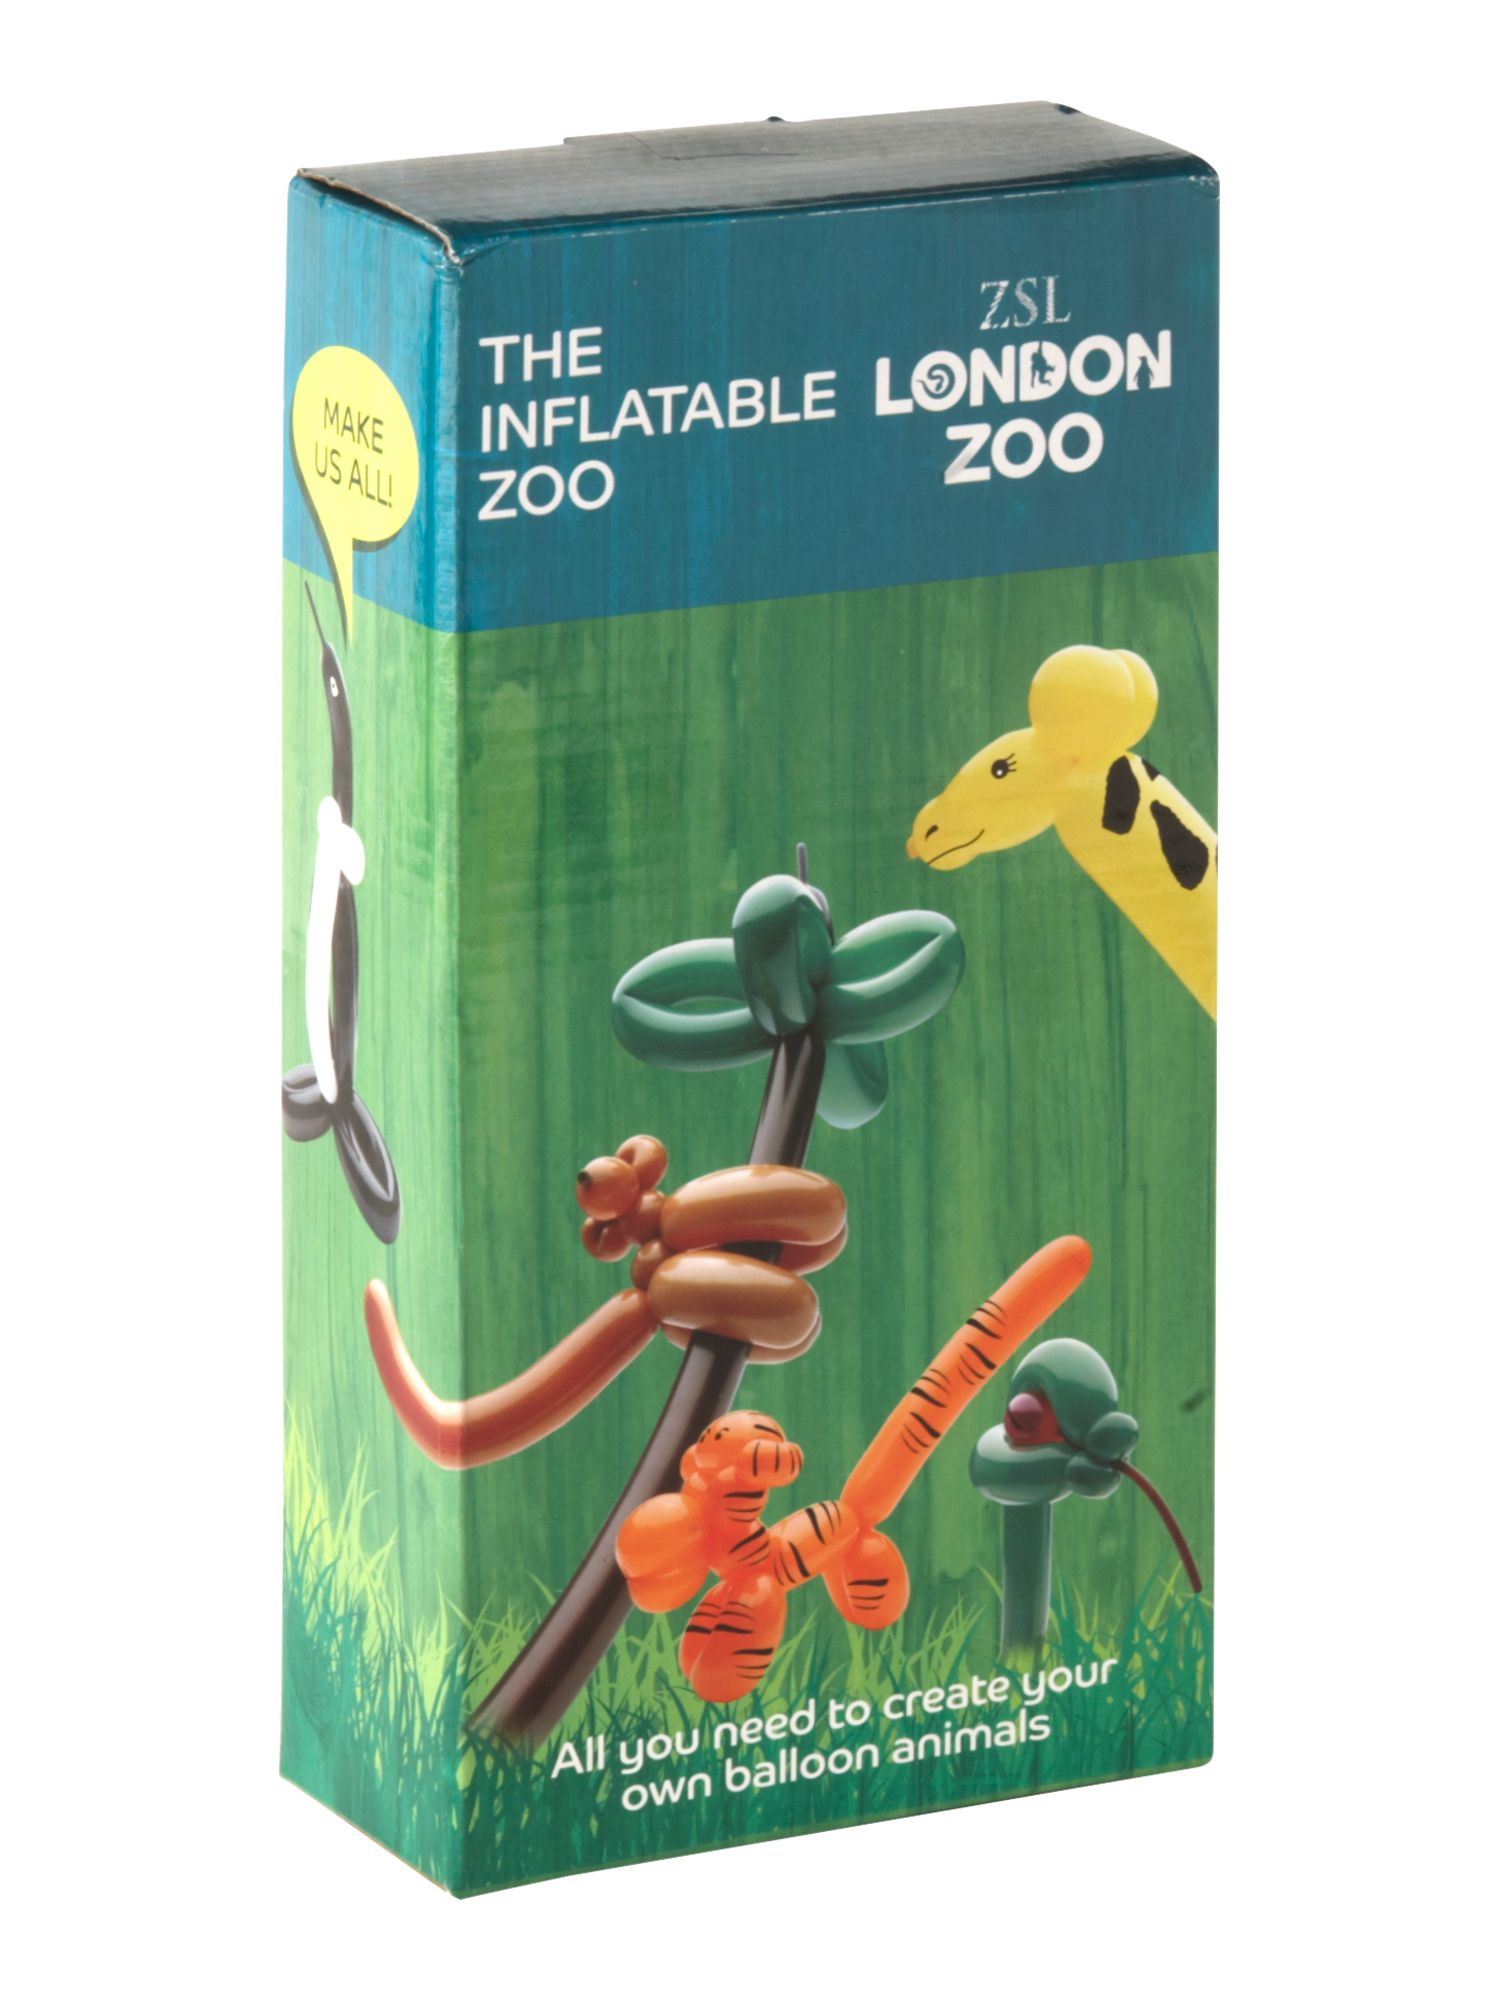 House of Fraser London Zoo inflatable zoo